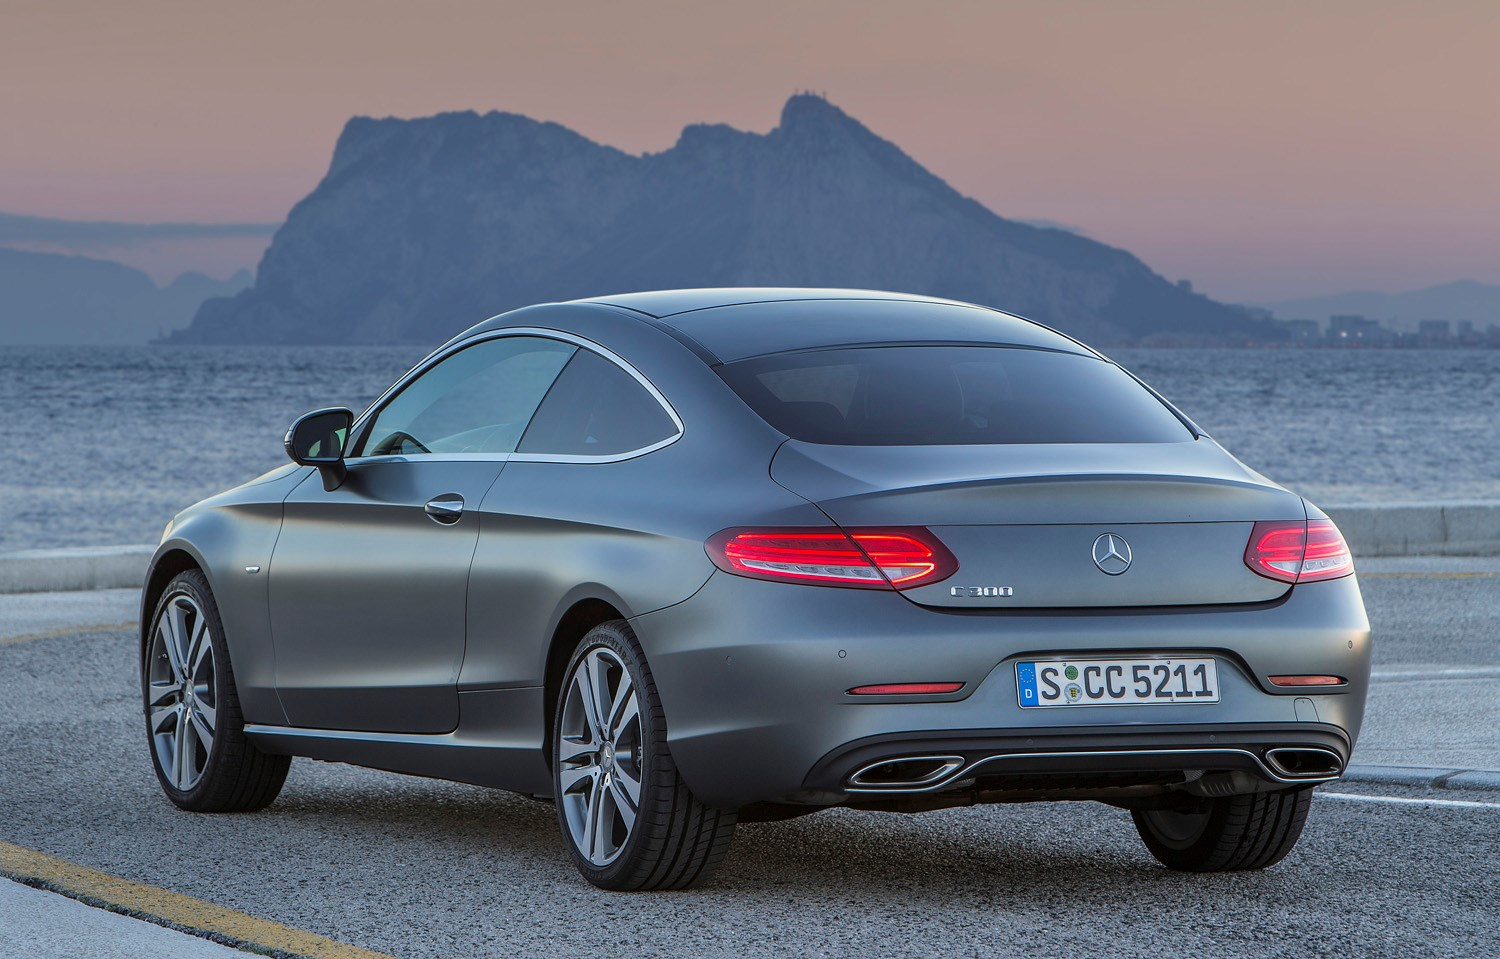 Amazing ... Mercedes Benz C Class Coupe 2016 Static Exterior ...